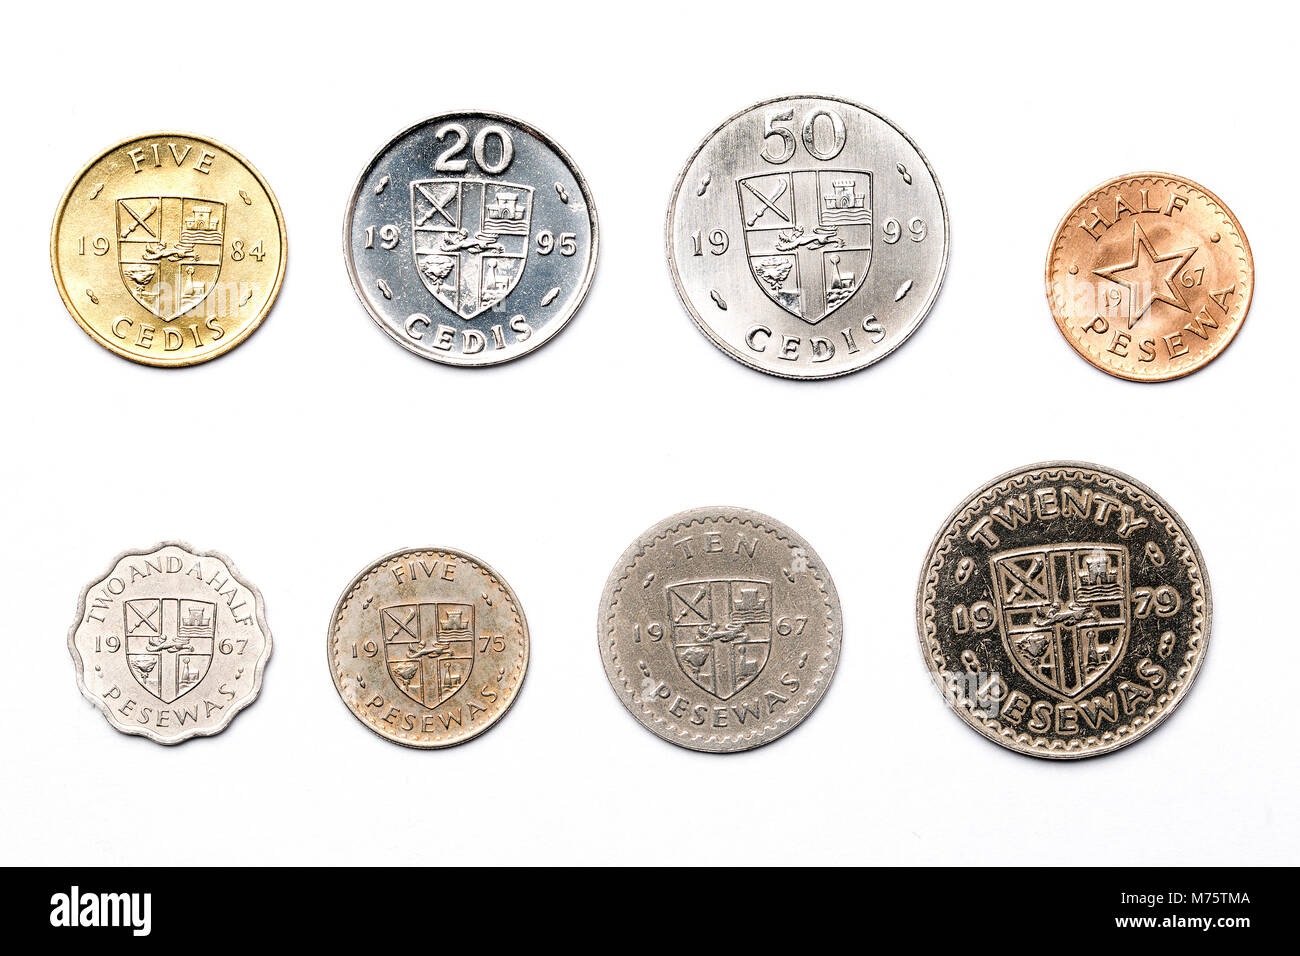 Ghanaian coins on a white background - Stock Image